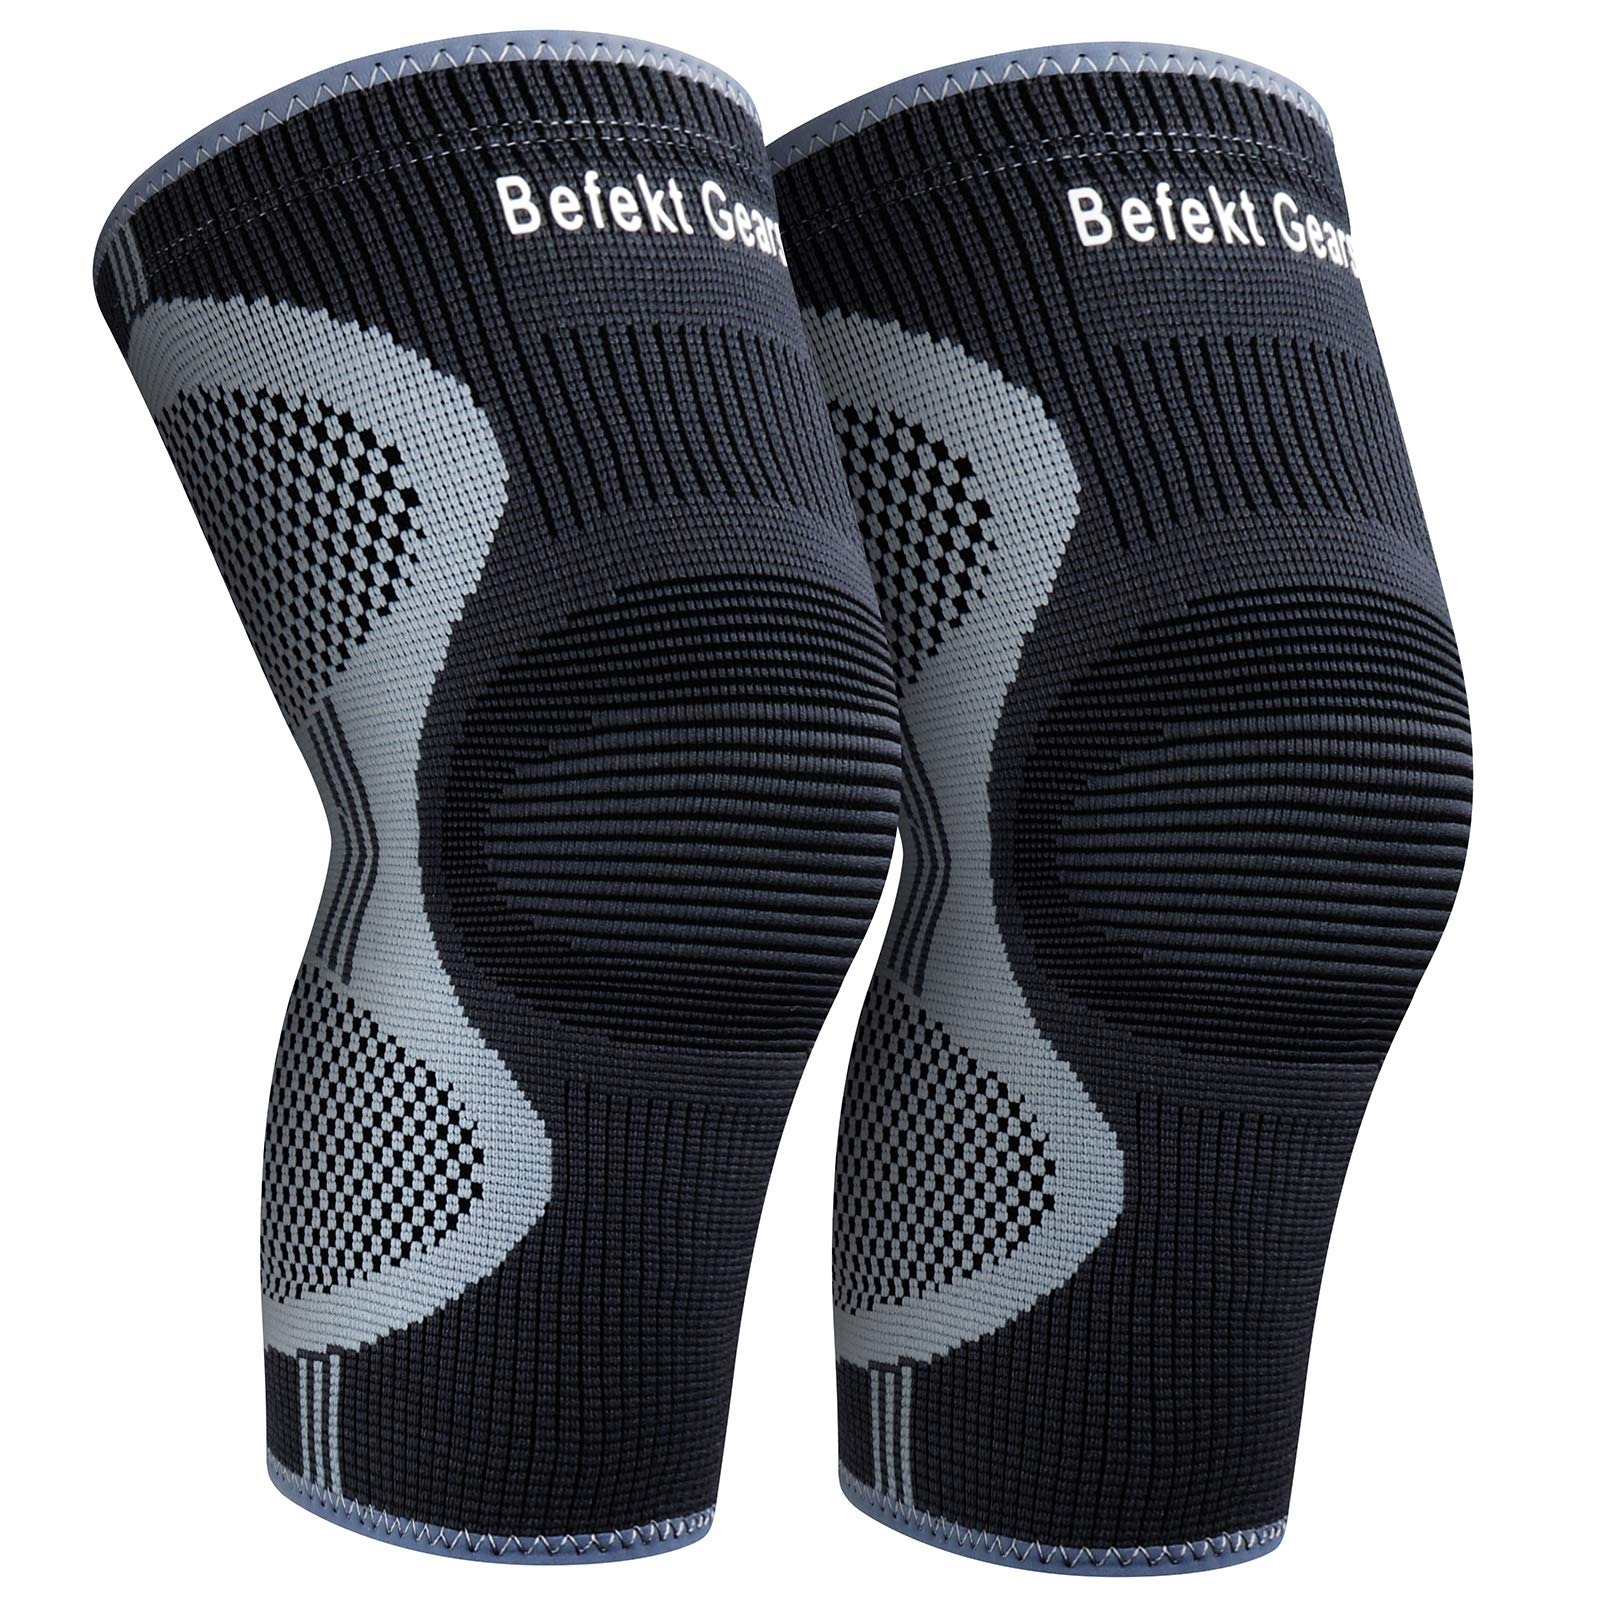 Befekt Gears Knee Support for Men Women, [2 Pack] Breathable Anti-Slip Knee Brace Compression Sleeve - Ideal for Arthritis, ACL, Meniscus Tear, Knee Pain Relief & Injury Rehabilitation Sports